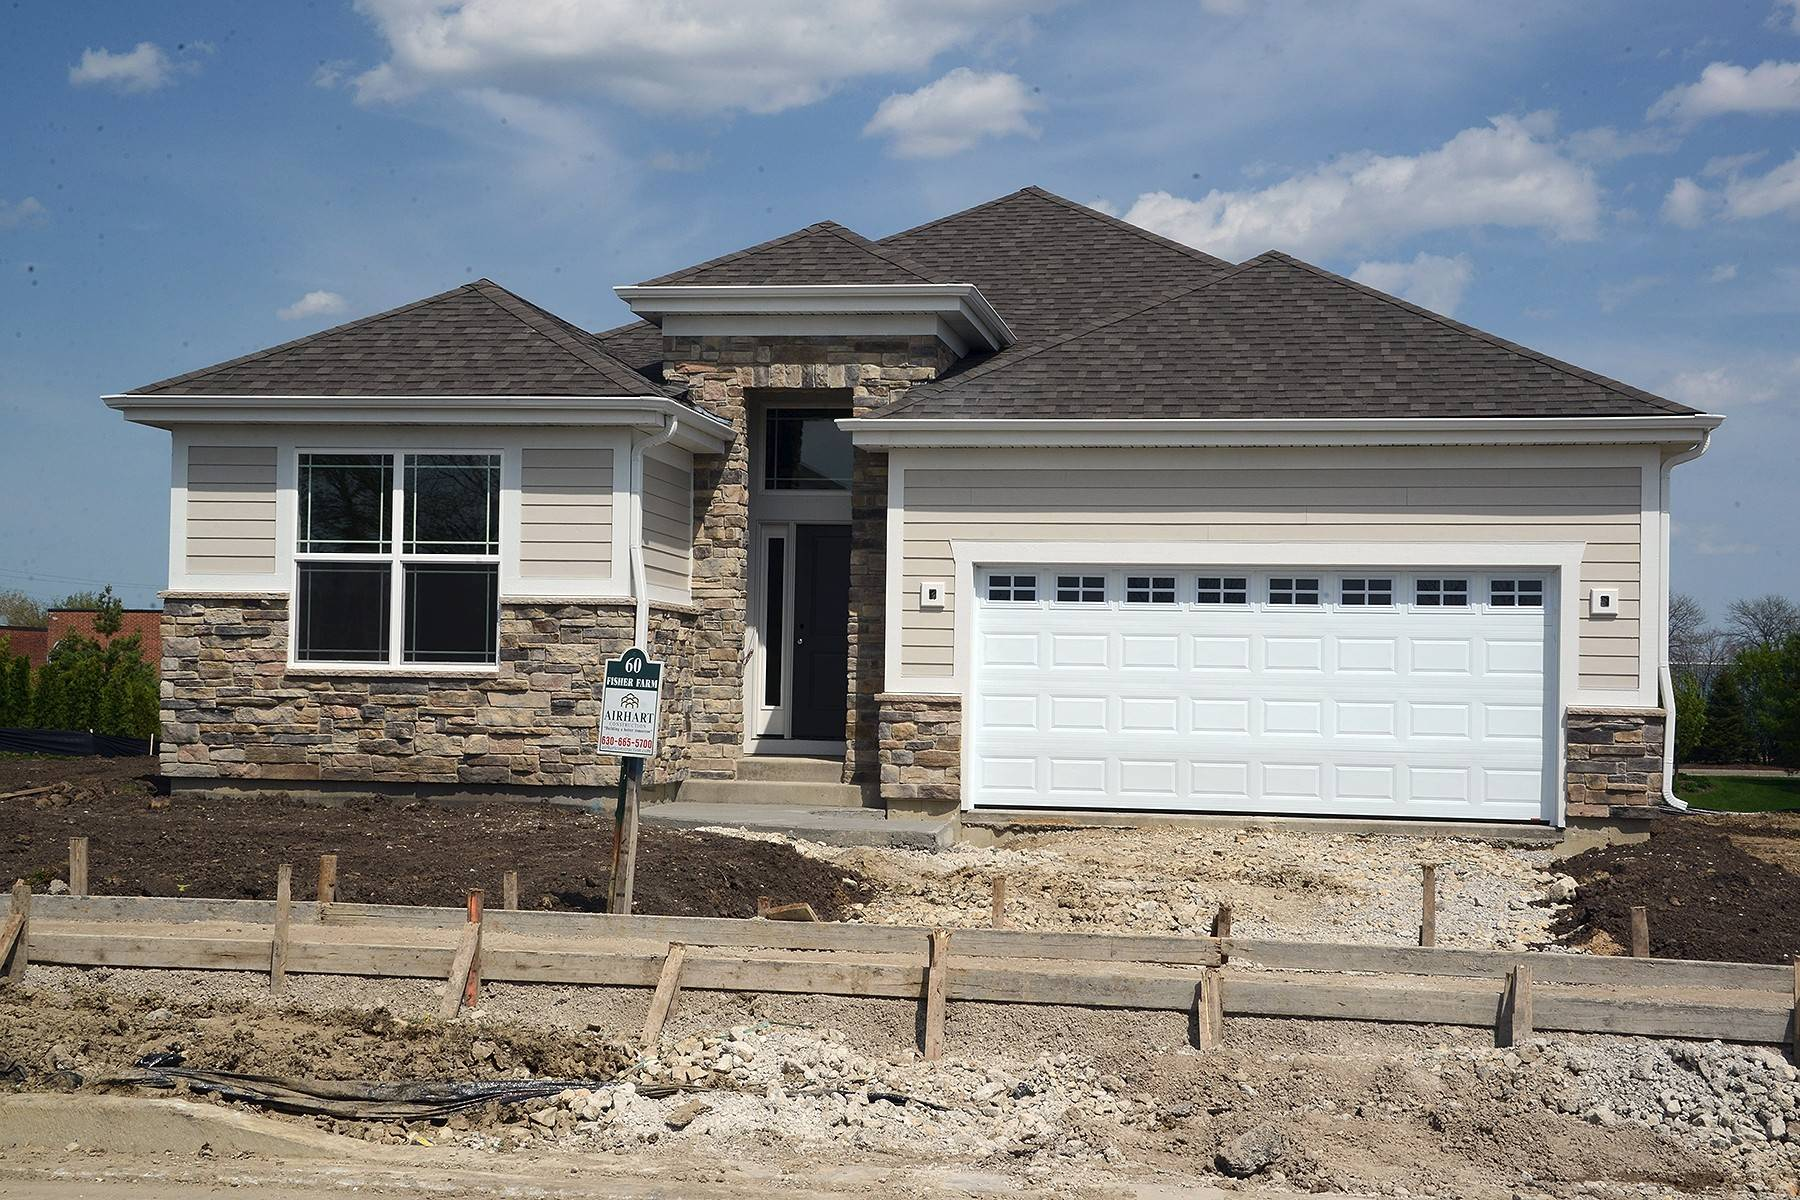 Airhart Construction will soon complete this house available at its Fisher Farm community in Winfield.